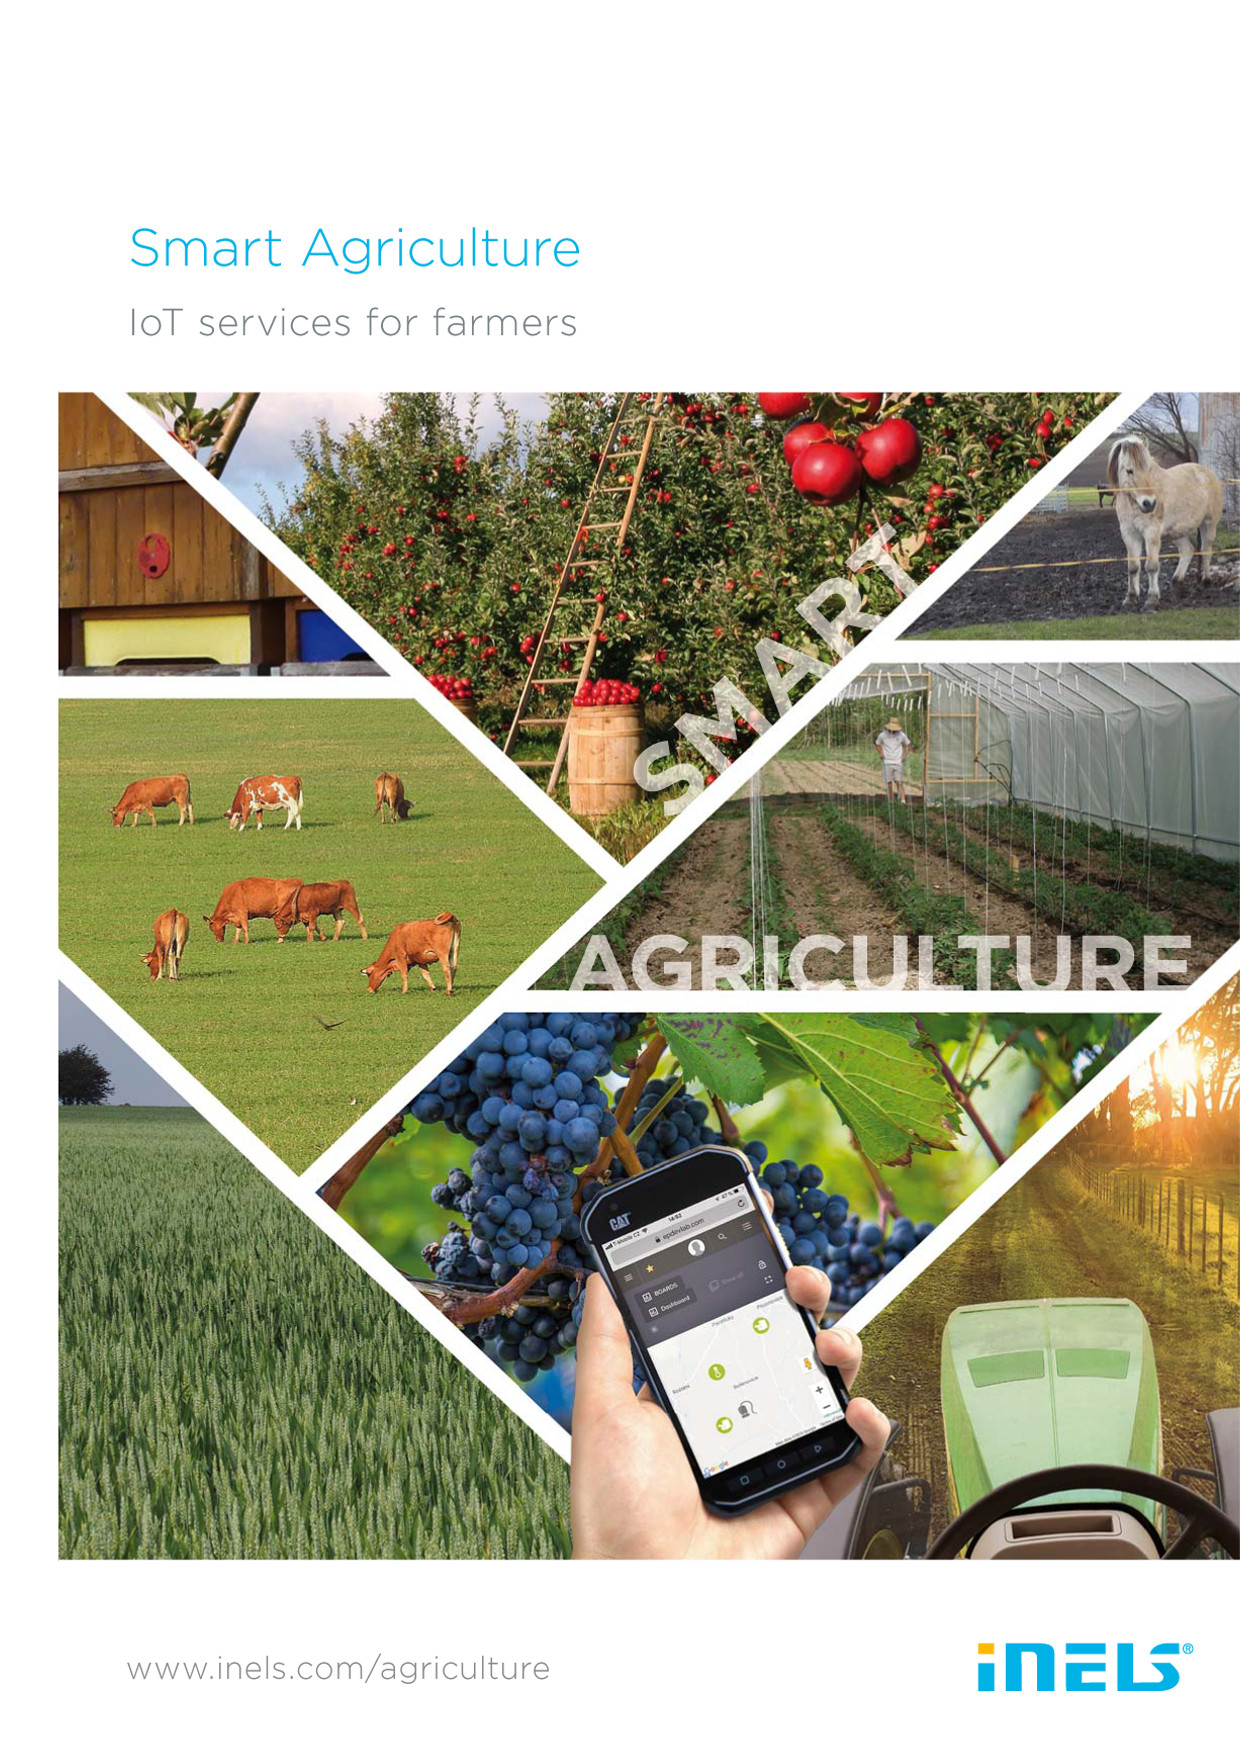 Smart Agriculture preview